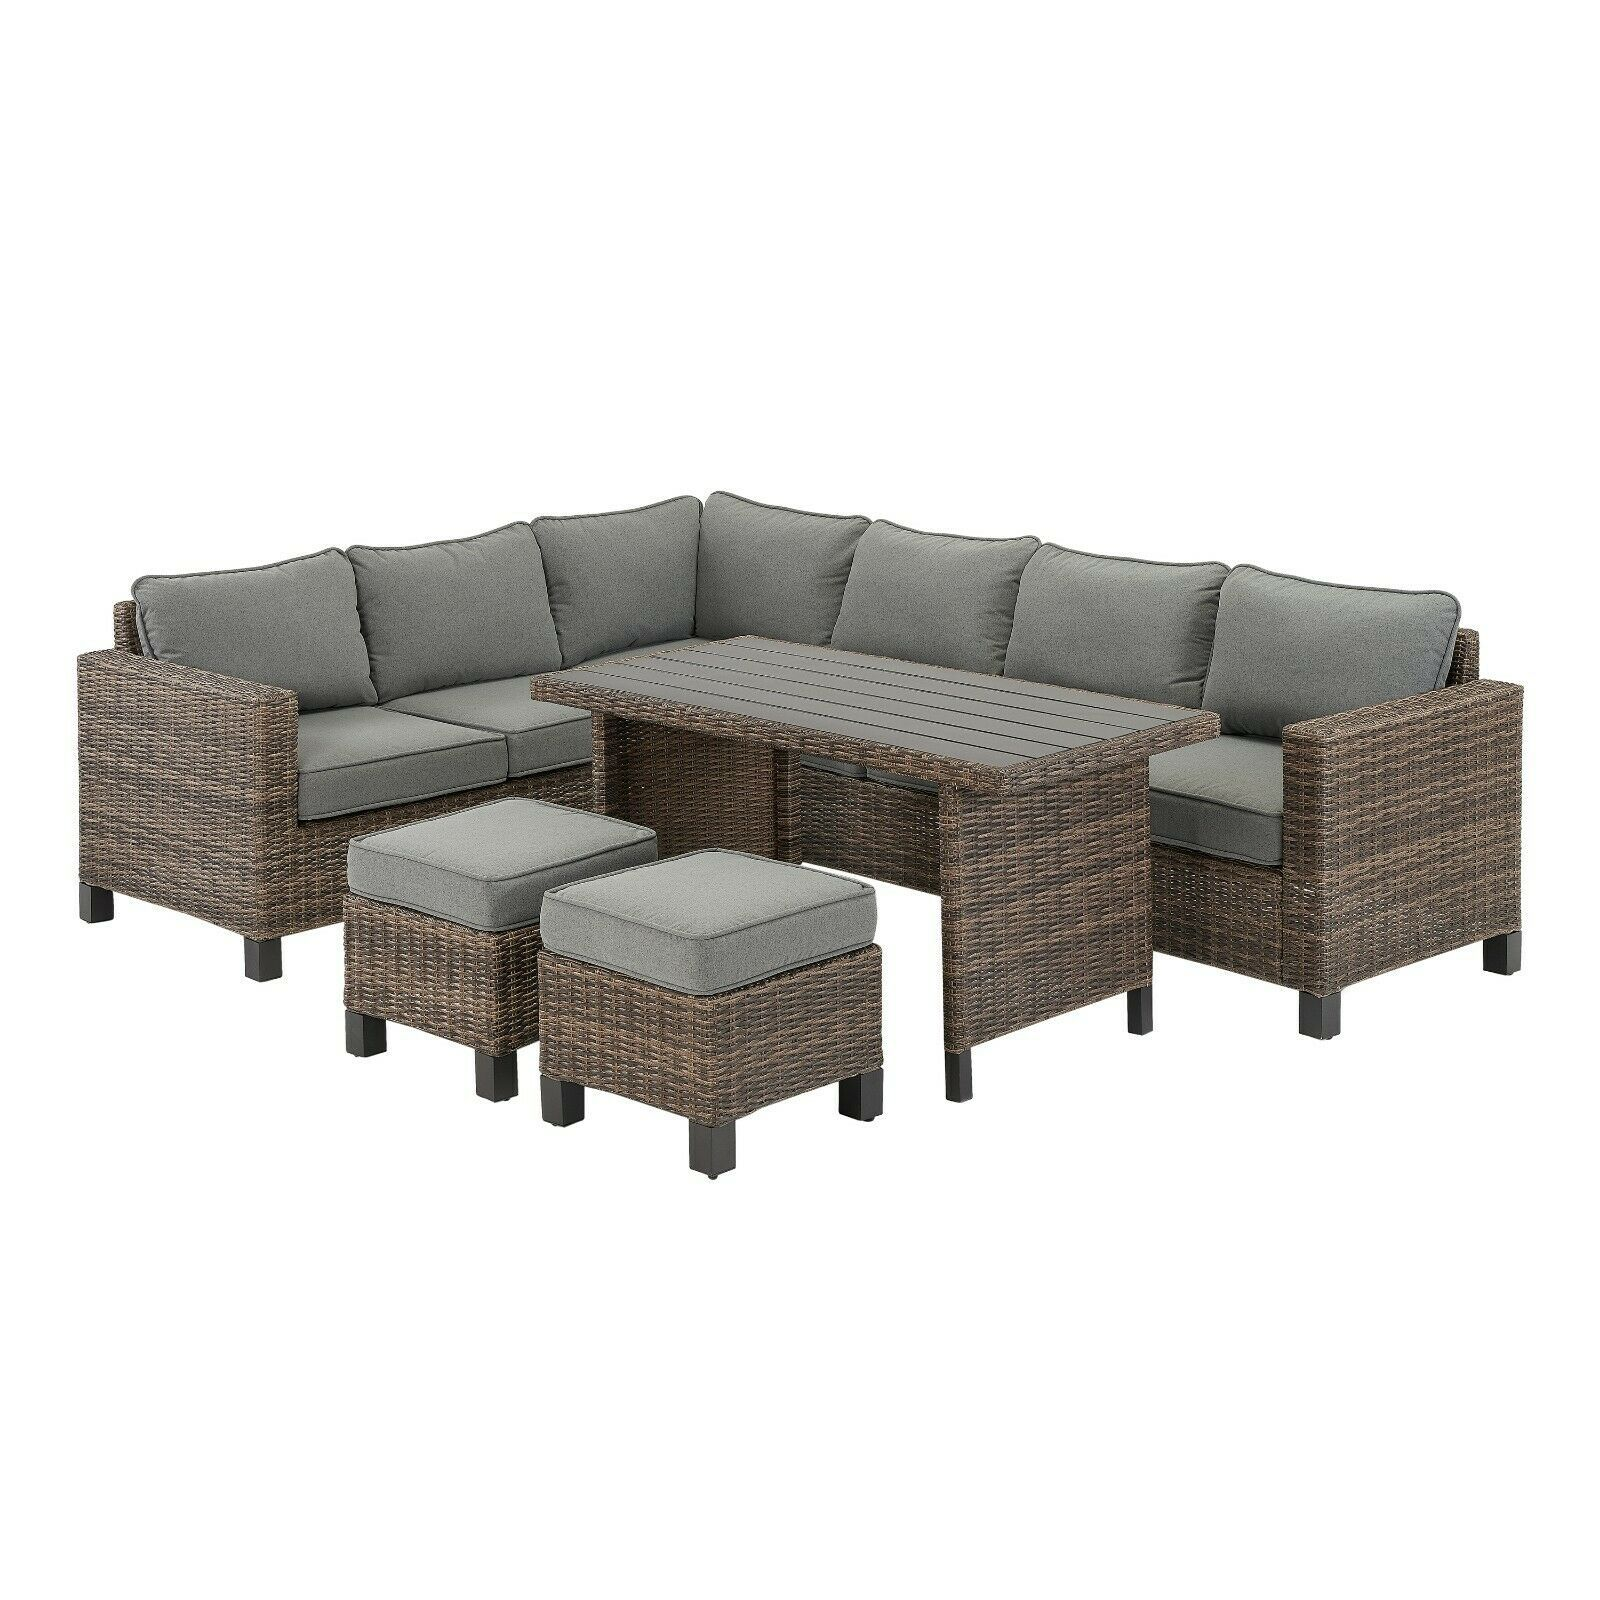 c22f59d2a7904dd1098cef0b5df9341d - Better Homes And Gardens Outdoor Sectional Replacement Cushions